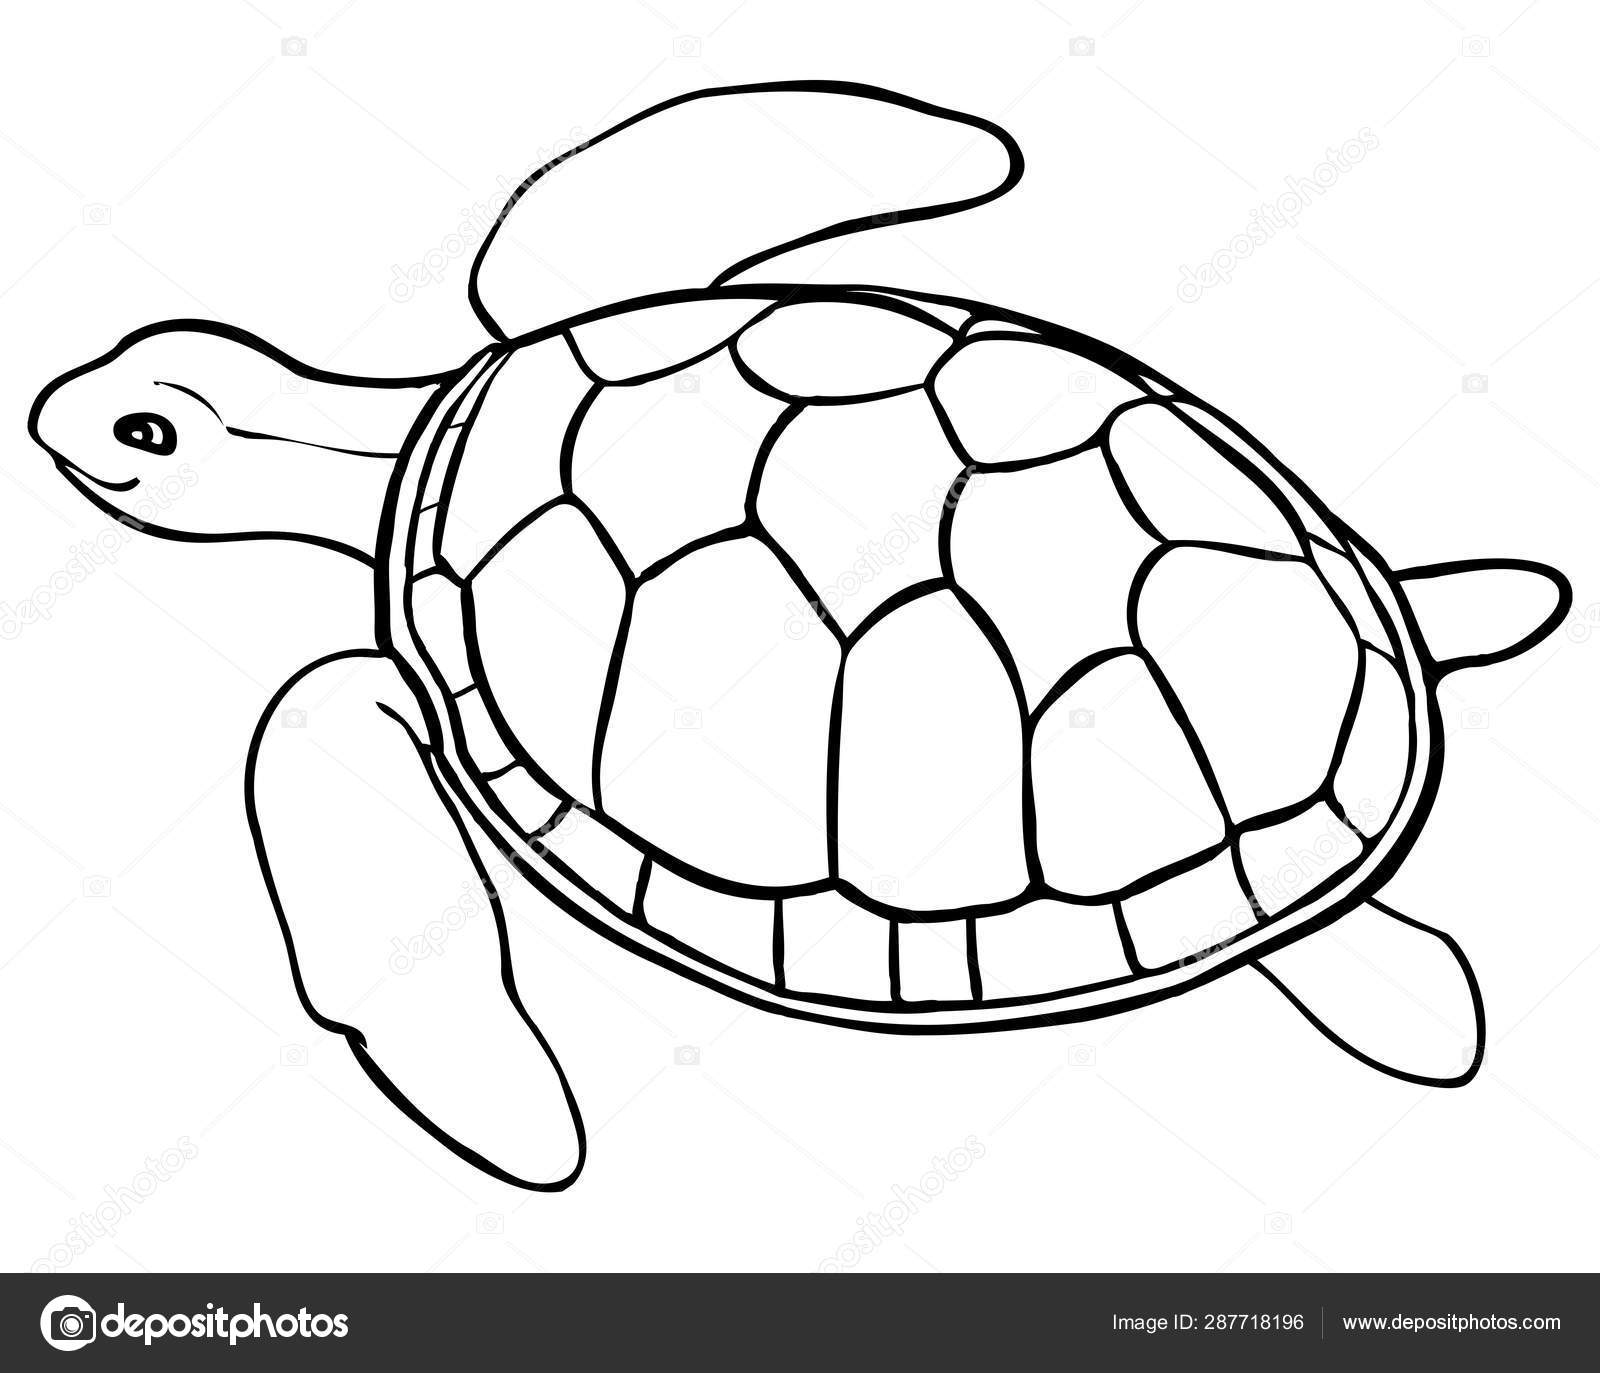 turtles colouring print download turtle coloring pages as the turtles colouring 1 2